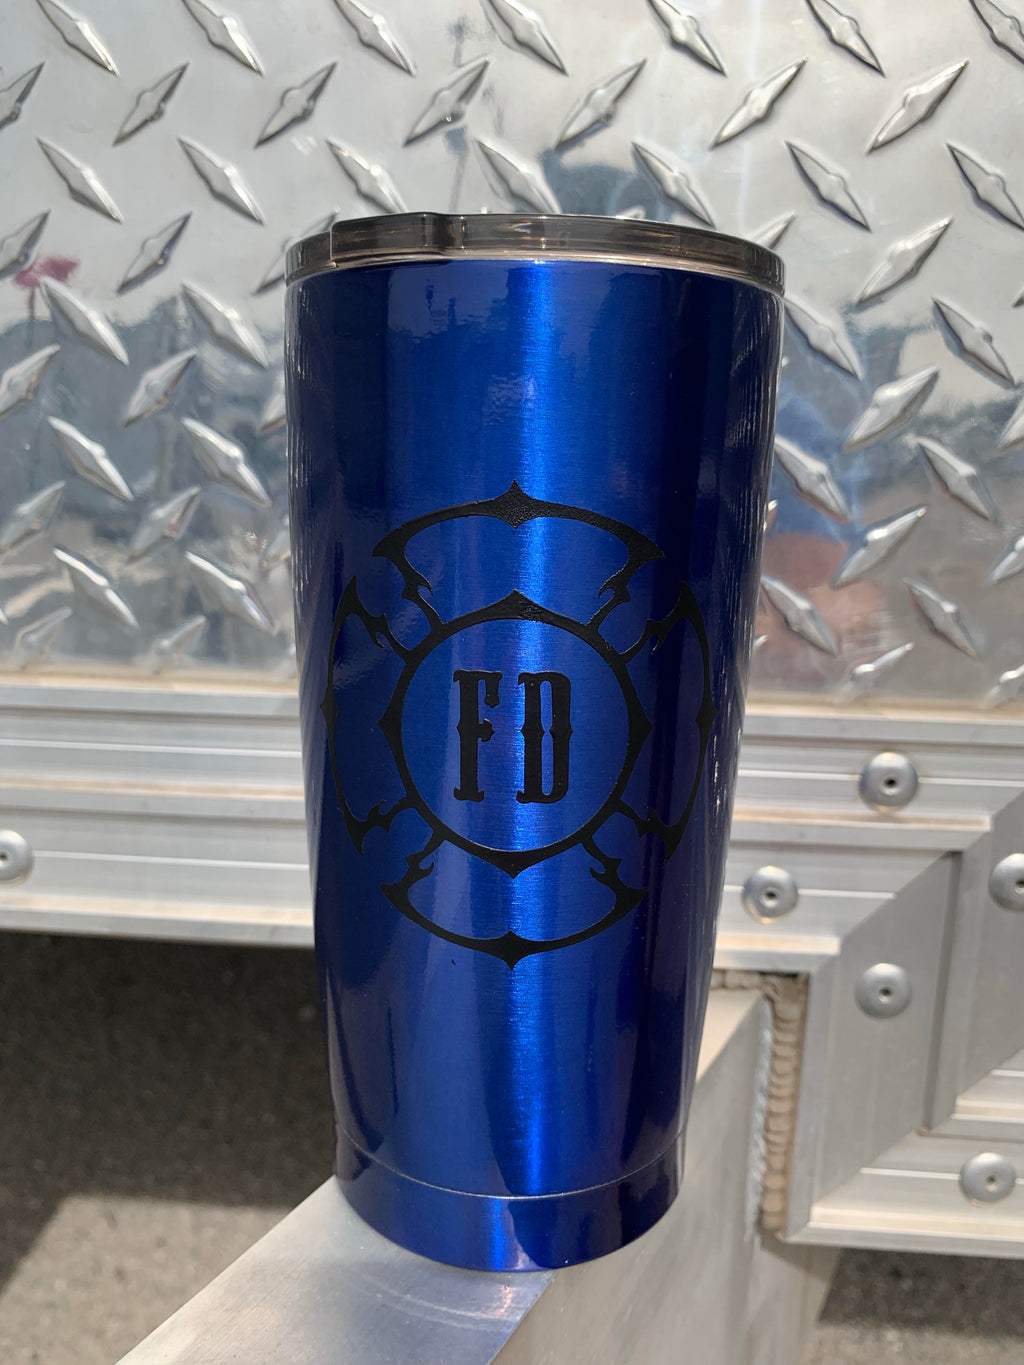 Blue 20oz. FD/Axe tumbler